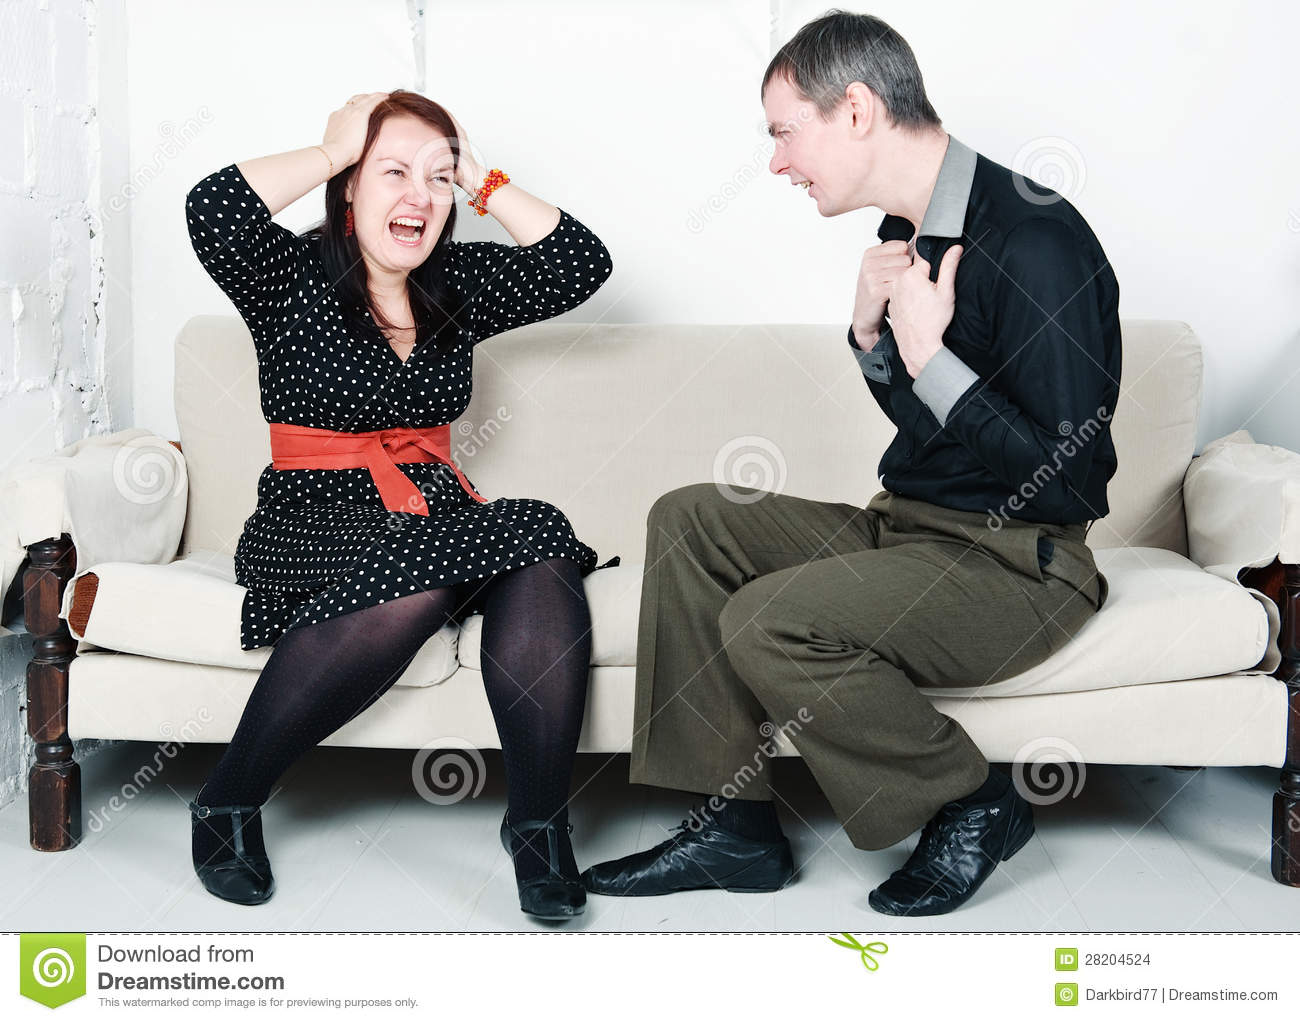 social conflict between women and men Conflict explanations, feminism introduction to sociology social  contributes to unnecessary social conflict and  the relationships between women and men,.